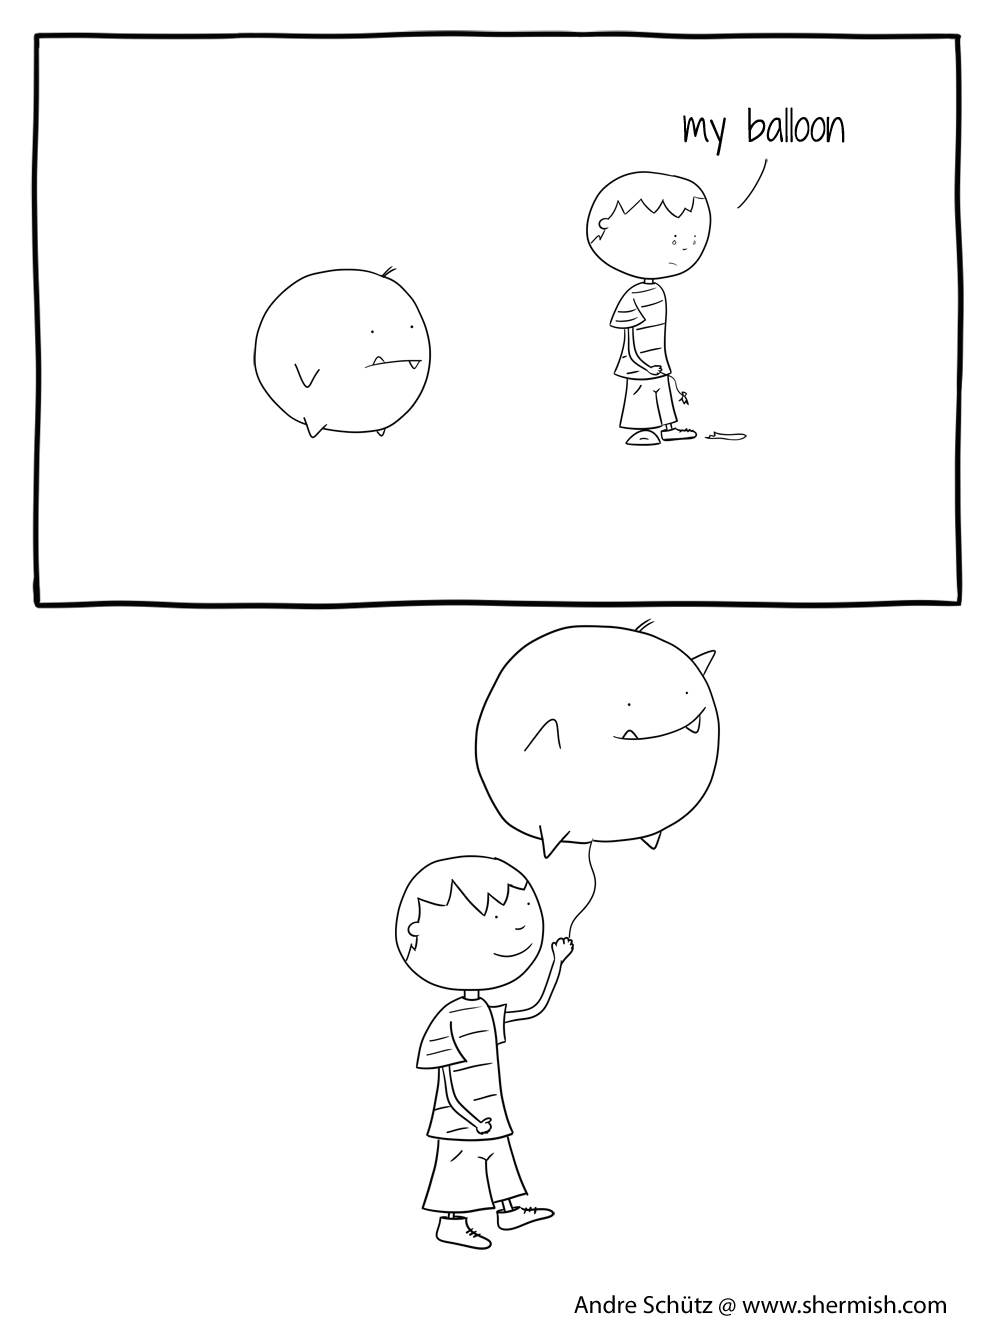 ghosts and monsters - inktober 2018 - balloon - shermish.com